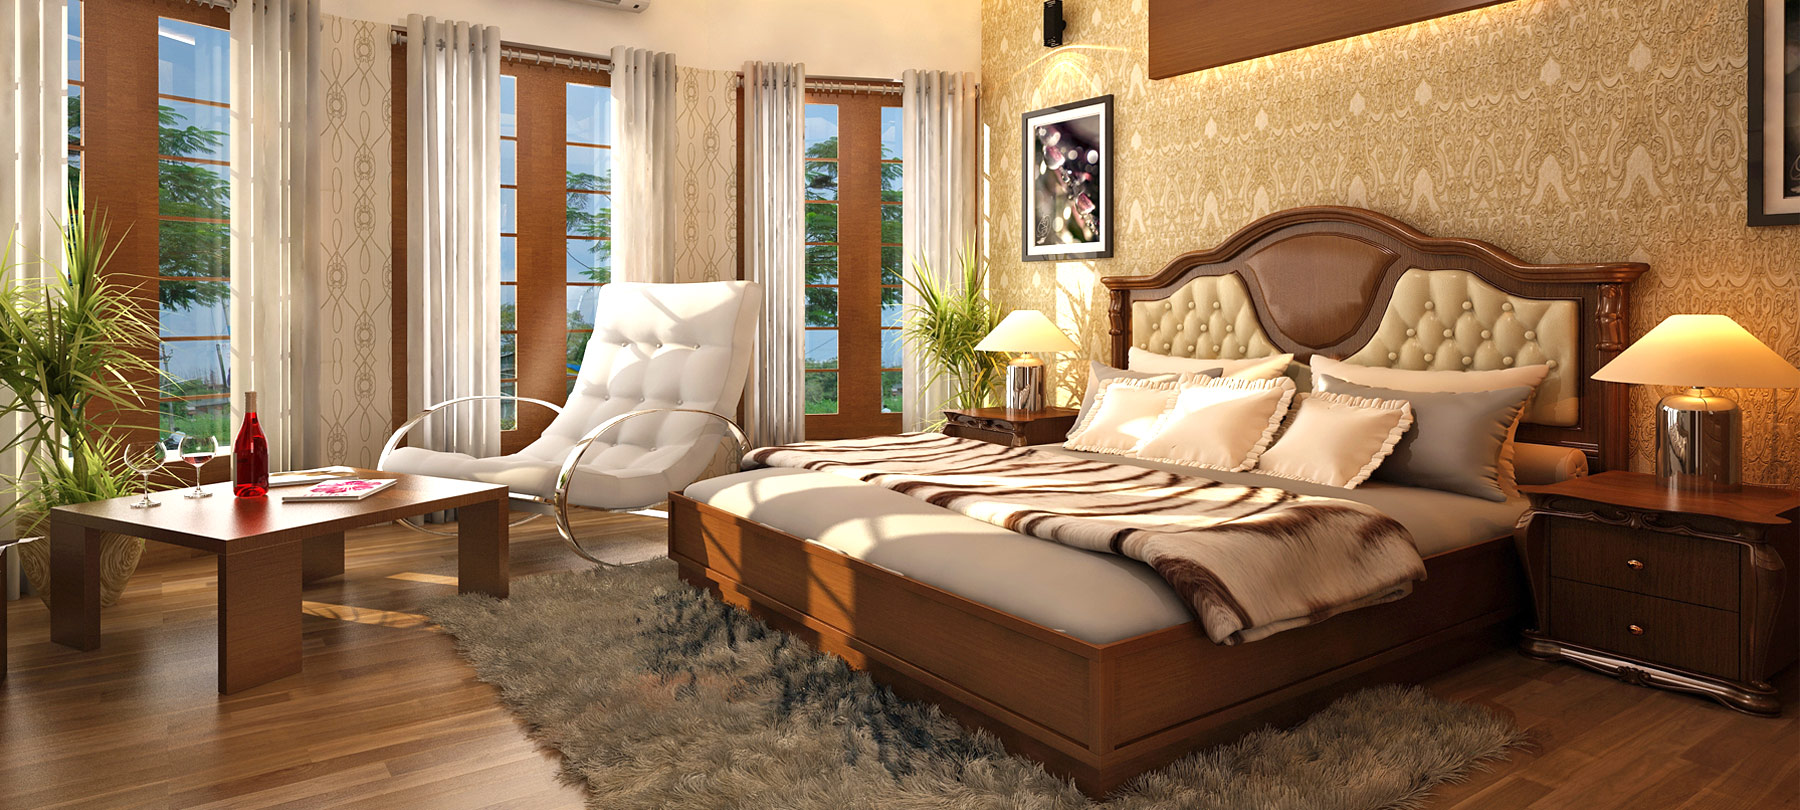 76 interior design courses ernakulam times school for Bedroom designs dlife